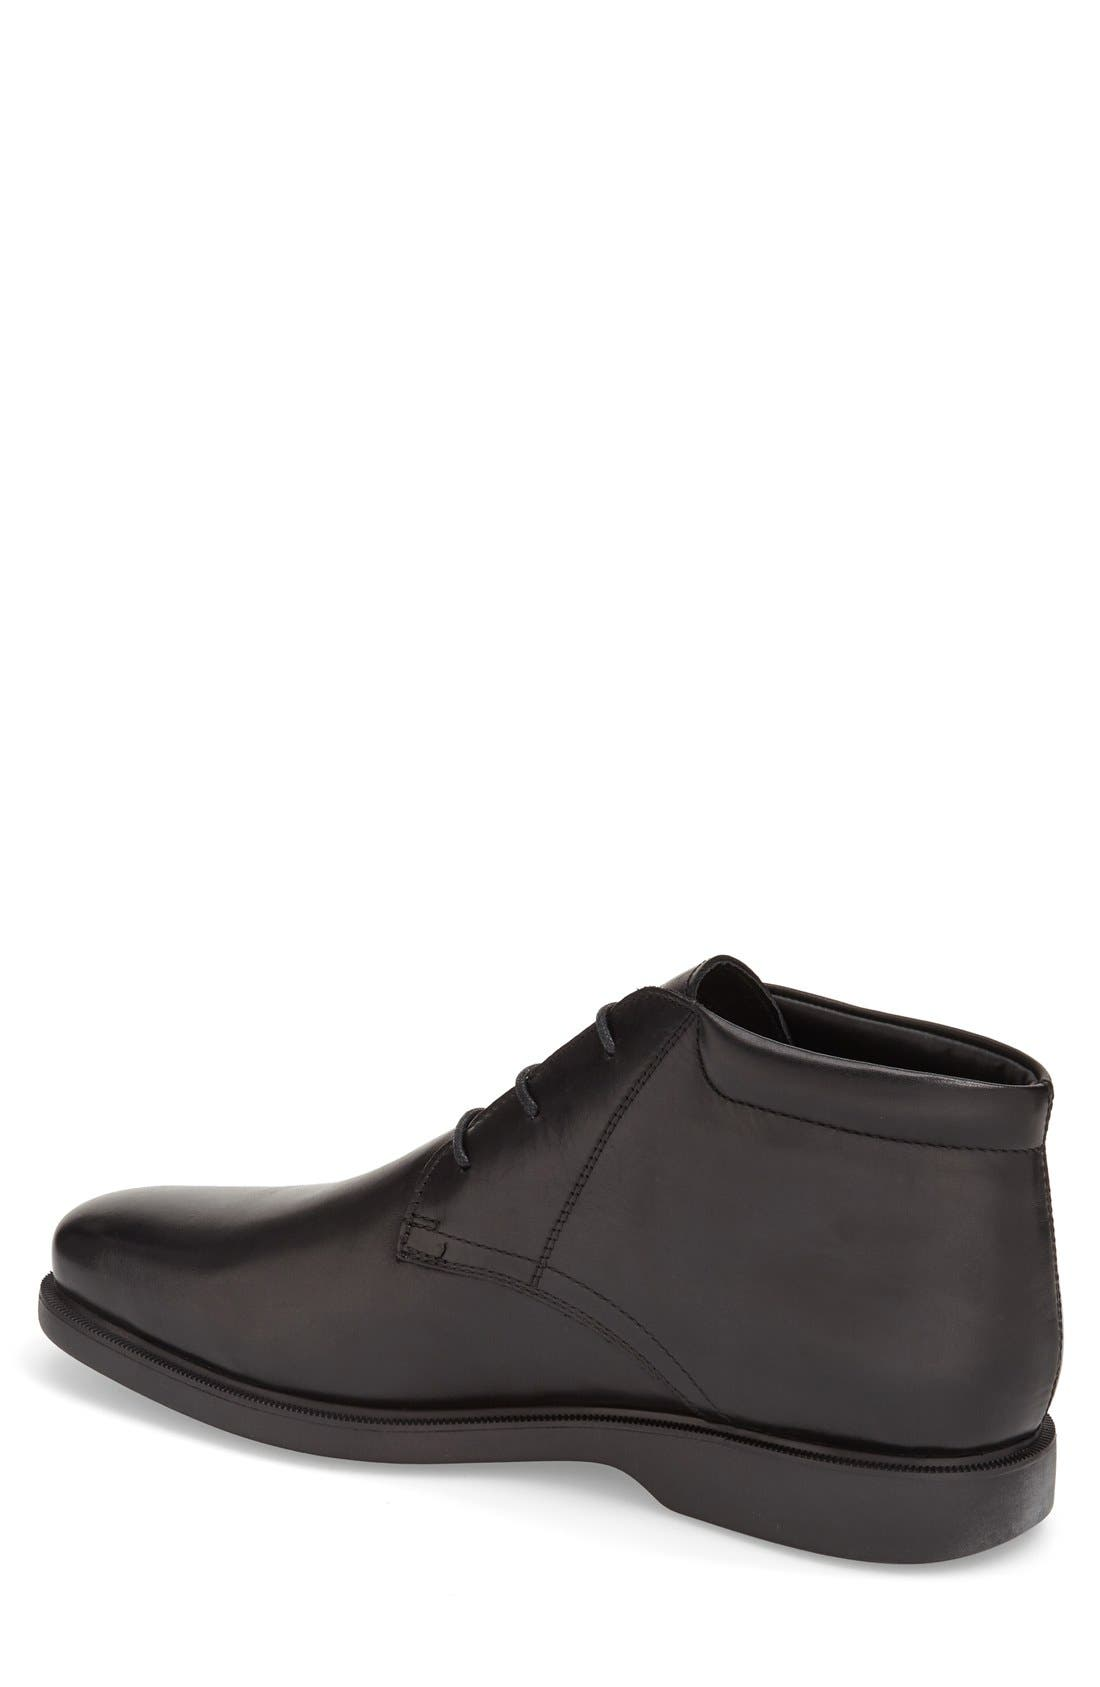 'Brayden -ABX' Amphibiox<sup>®</sup> Waterproof Oxford,                             Alternate thumbnail 2, color,                             BLACK